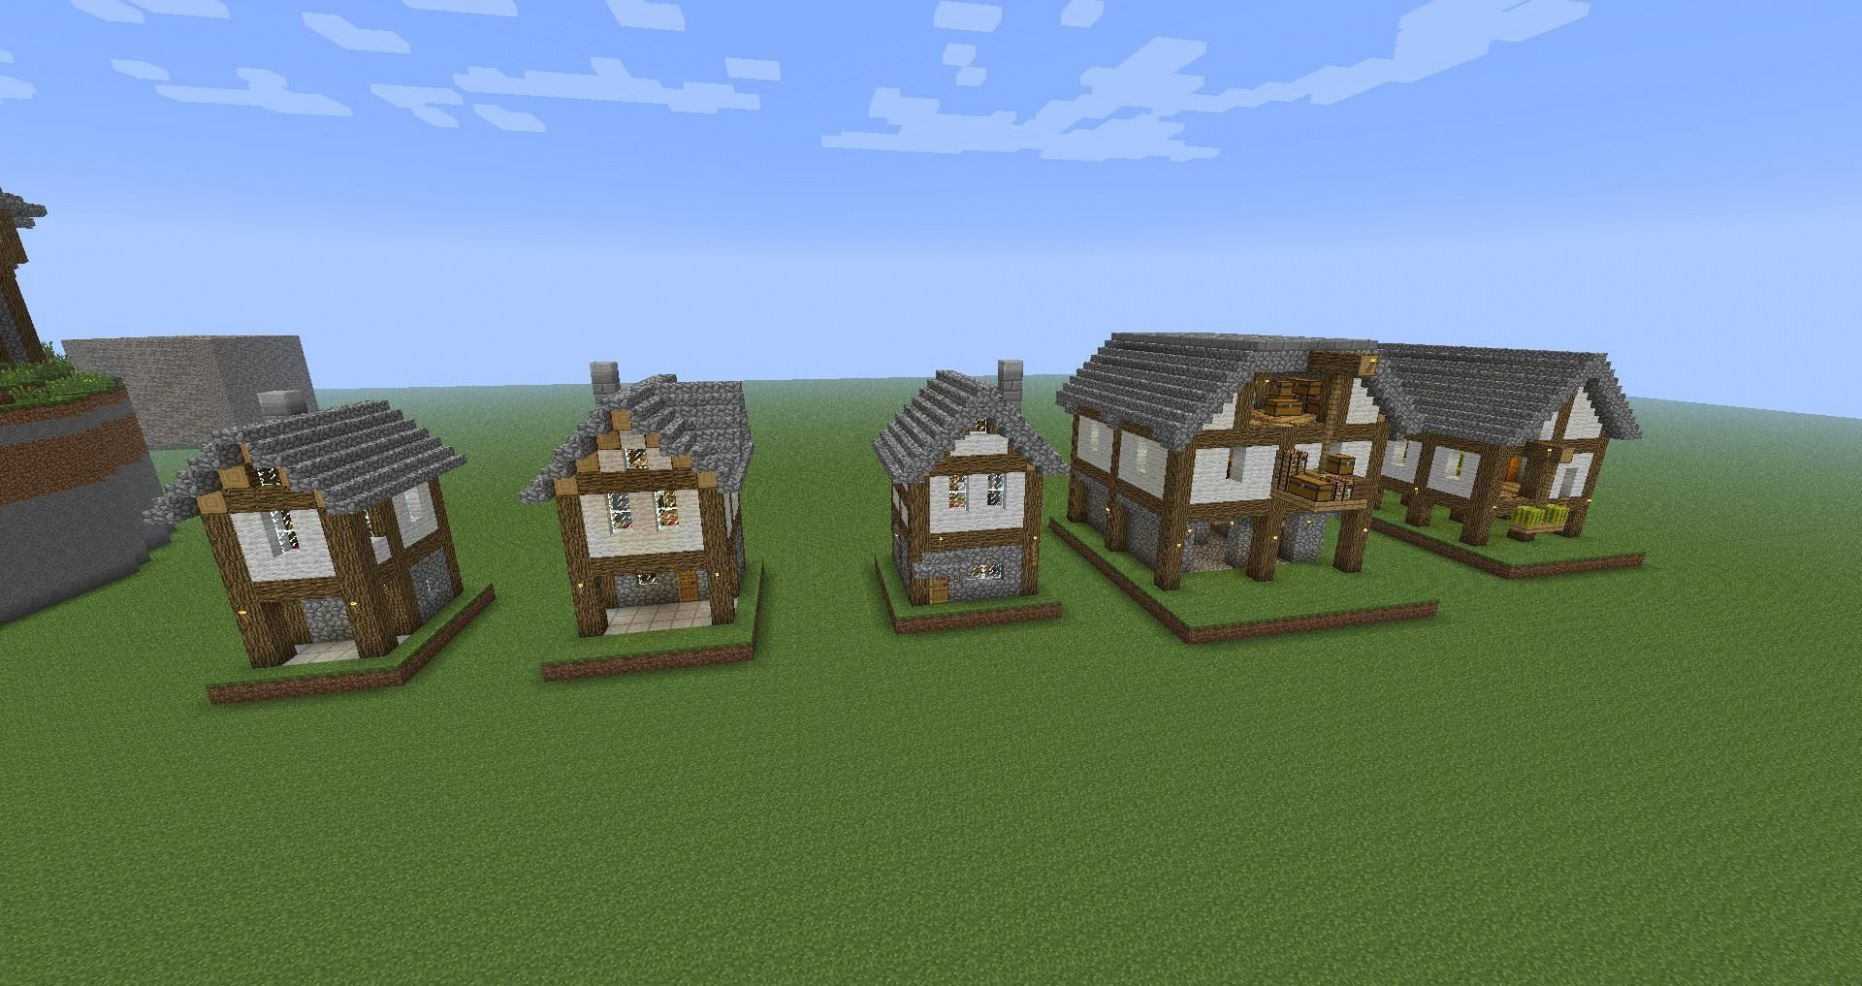 gorgeous water fountain ideas for minecraft the evolution of minecraft houses minecraft of water fountain ideas for minecraft - Download Small Village House Design Minecraft  Pics